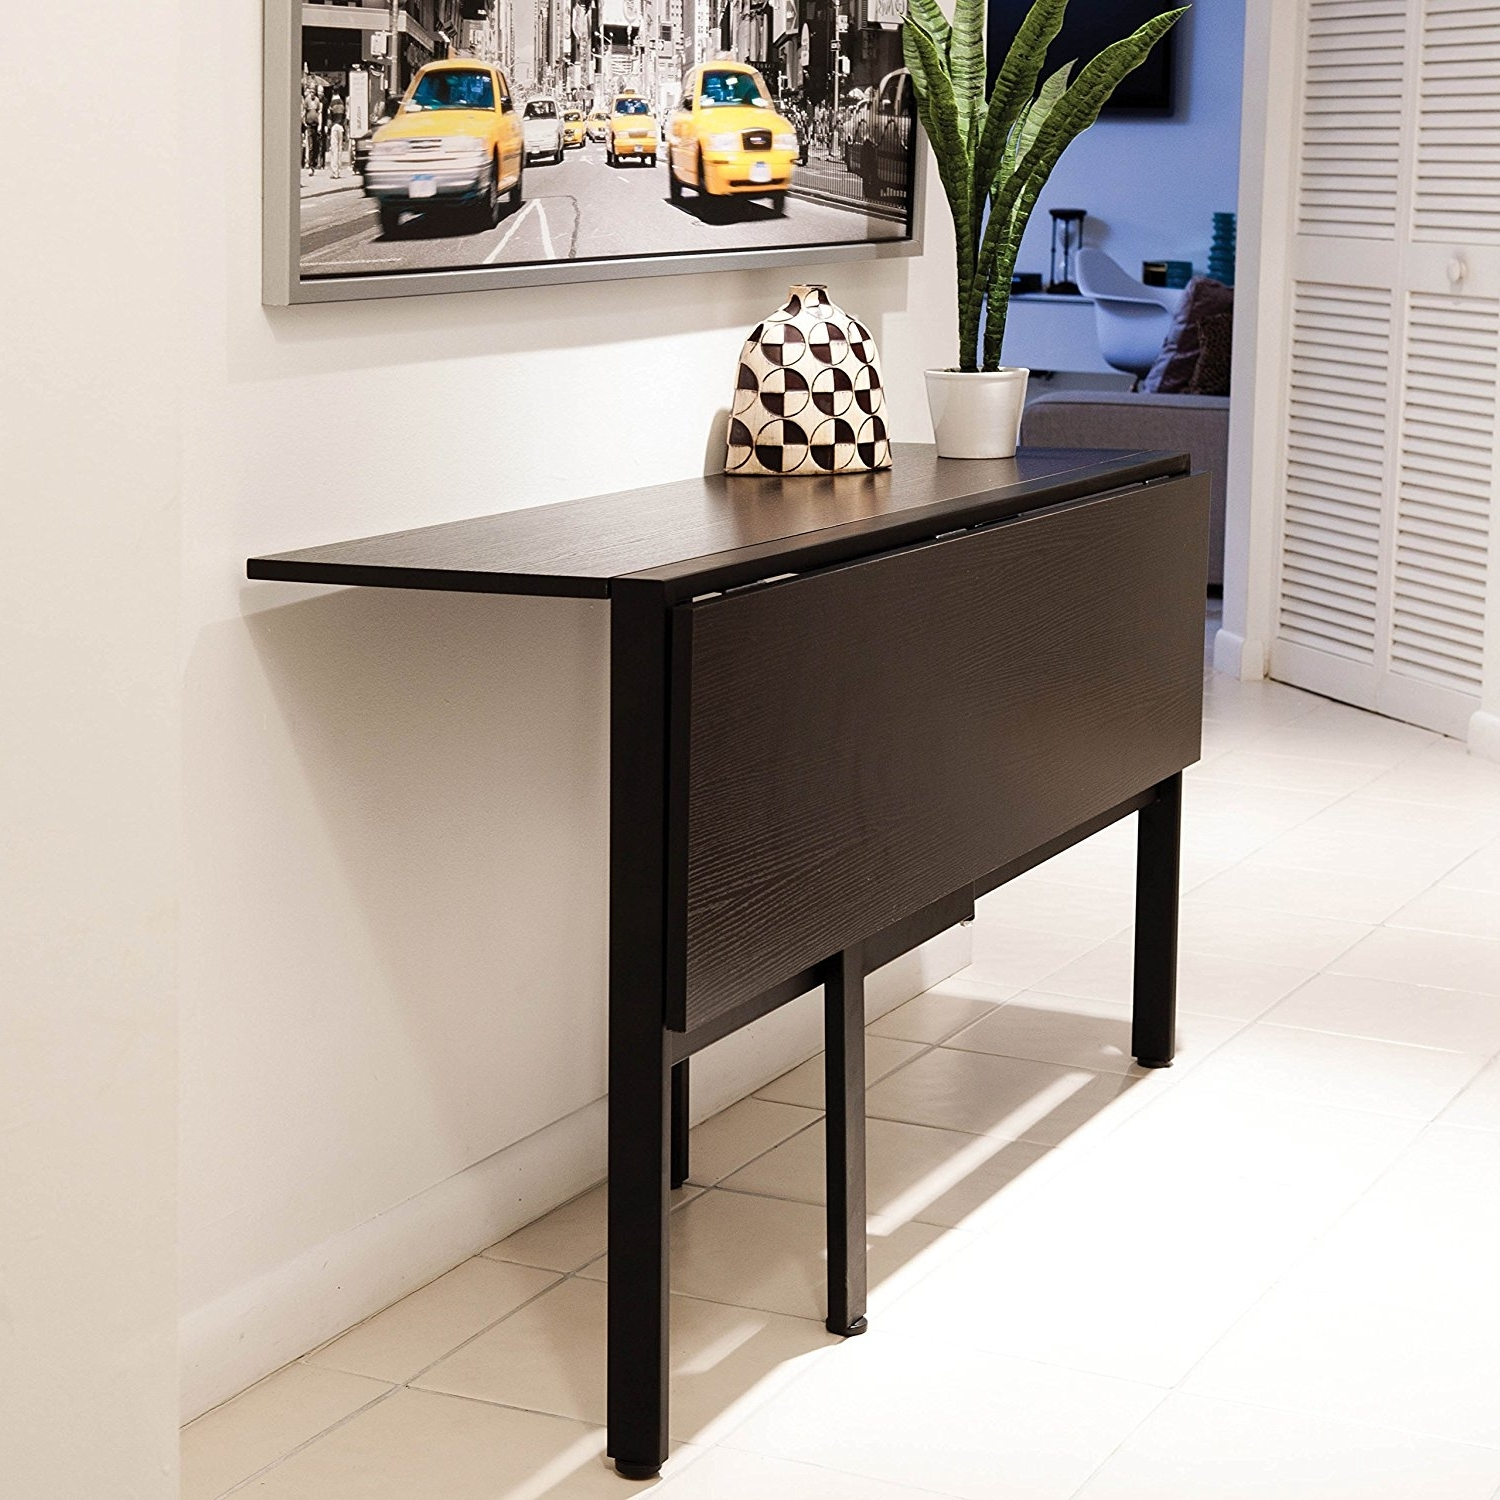 Folding Dining Tables Throughout Well Liked What Are The Benefits Of Folding Dining Tables? – Home Decor Ideas (View 6 of 25)